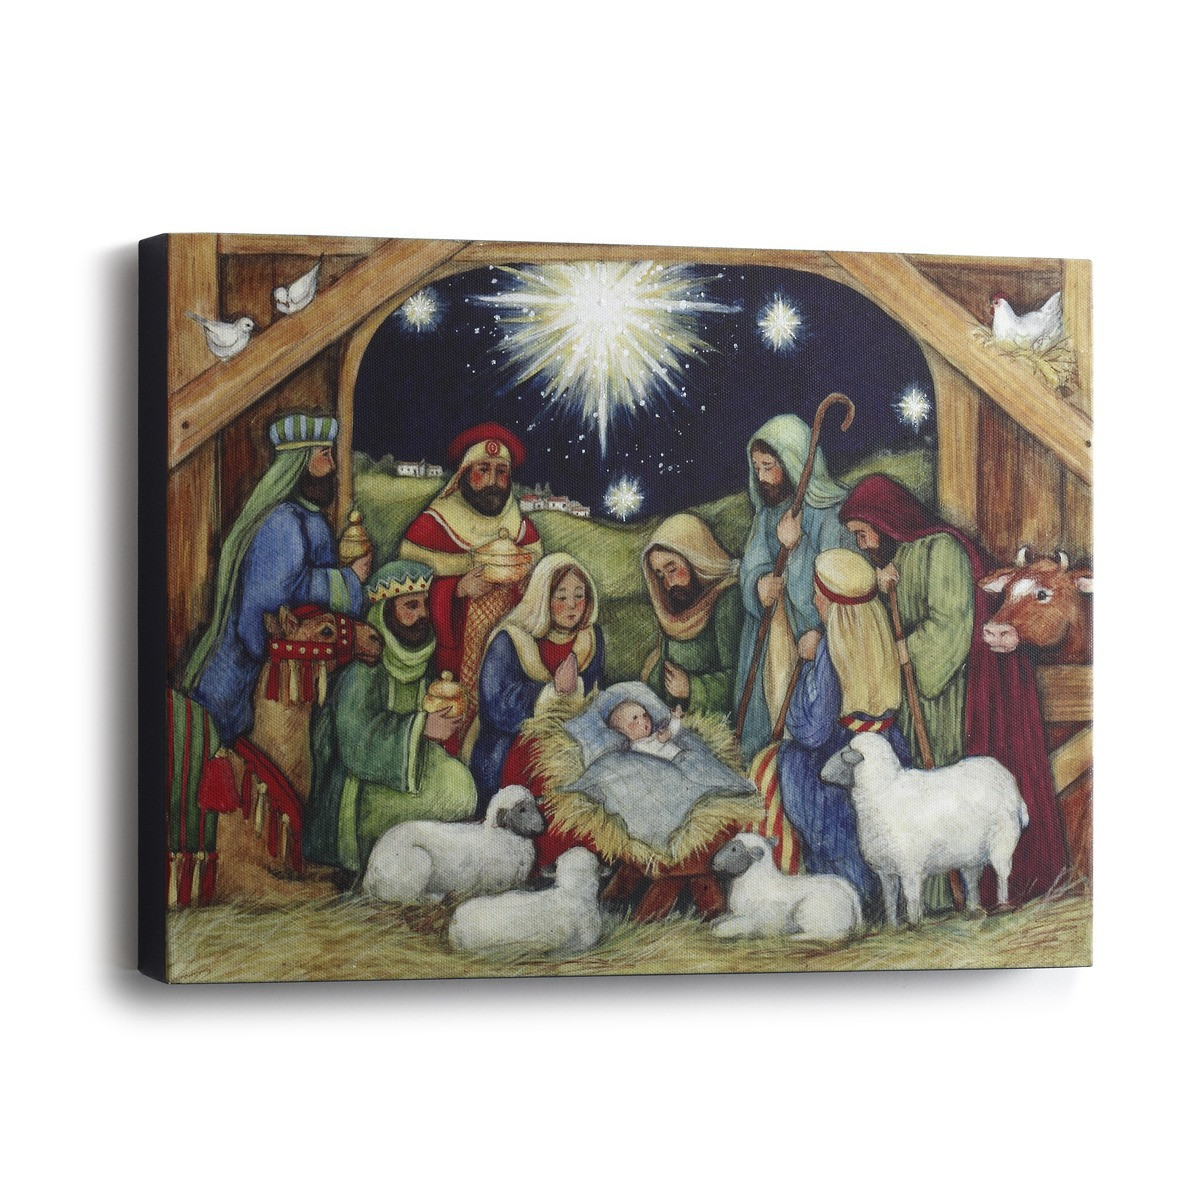 holy night print nativity scene canvas framed 12 x 9 dem60393 f c ziegler company. Black Bedroom Furniture Sets. Home Design Ideas